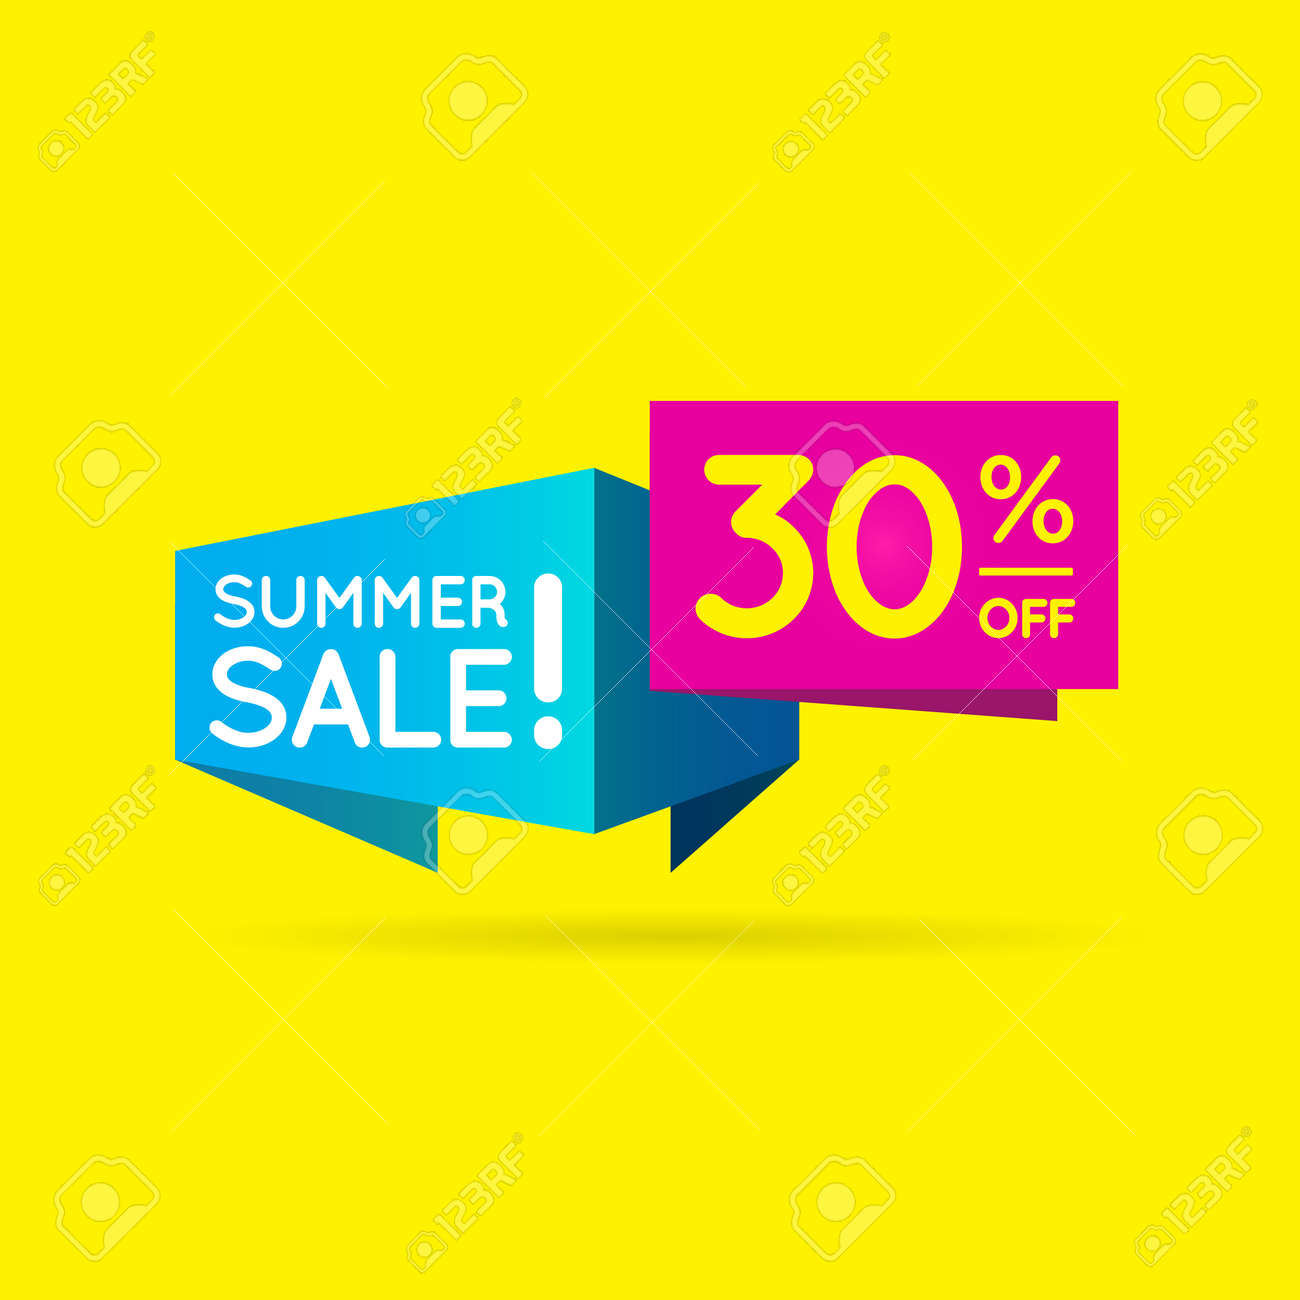 Business Sell 30% Offer shape  Sell shape to best offer your product - 158979503